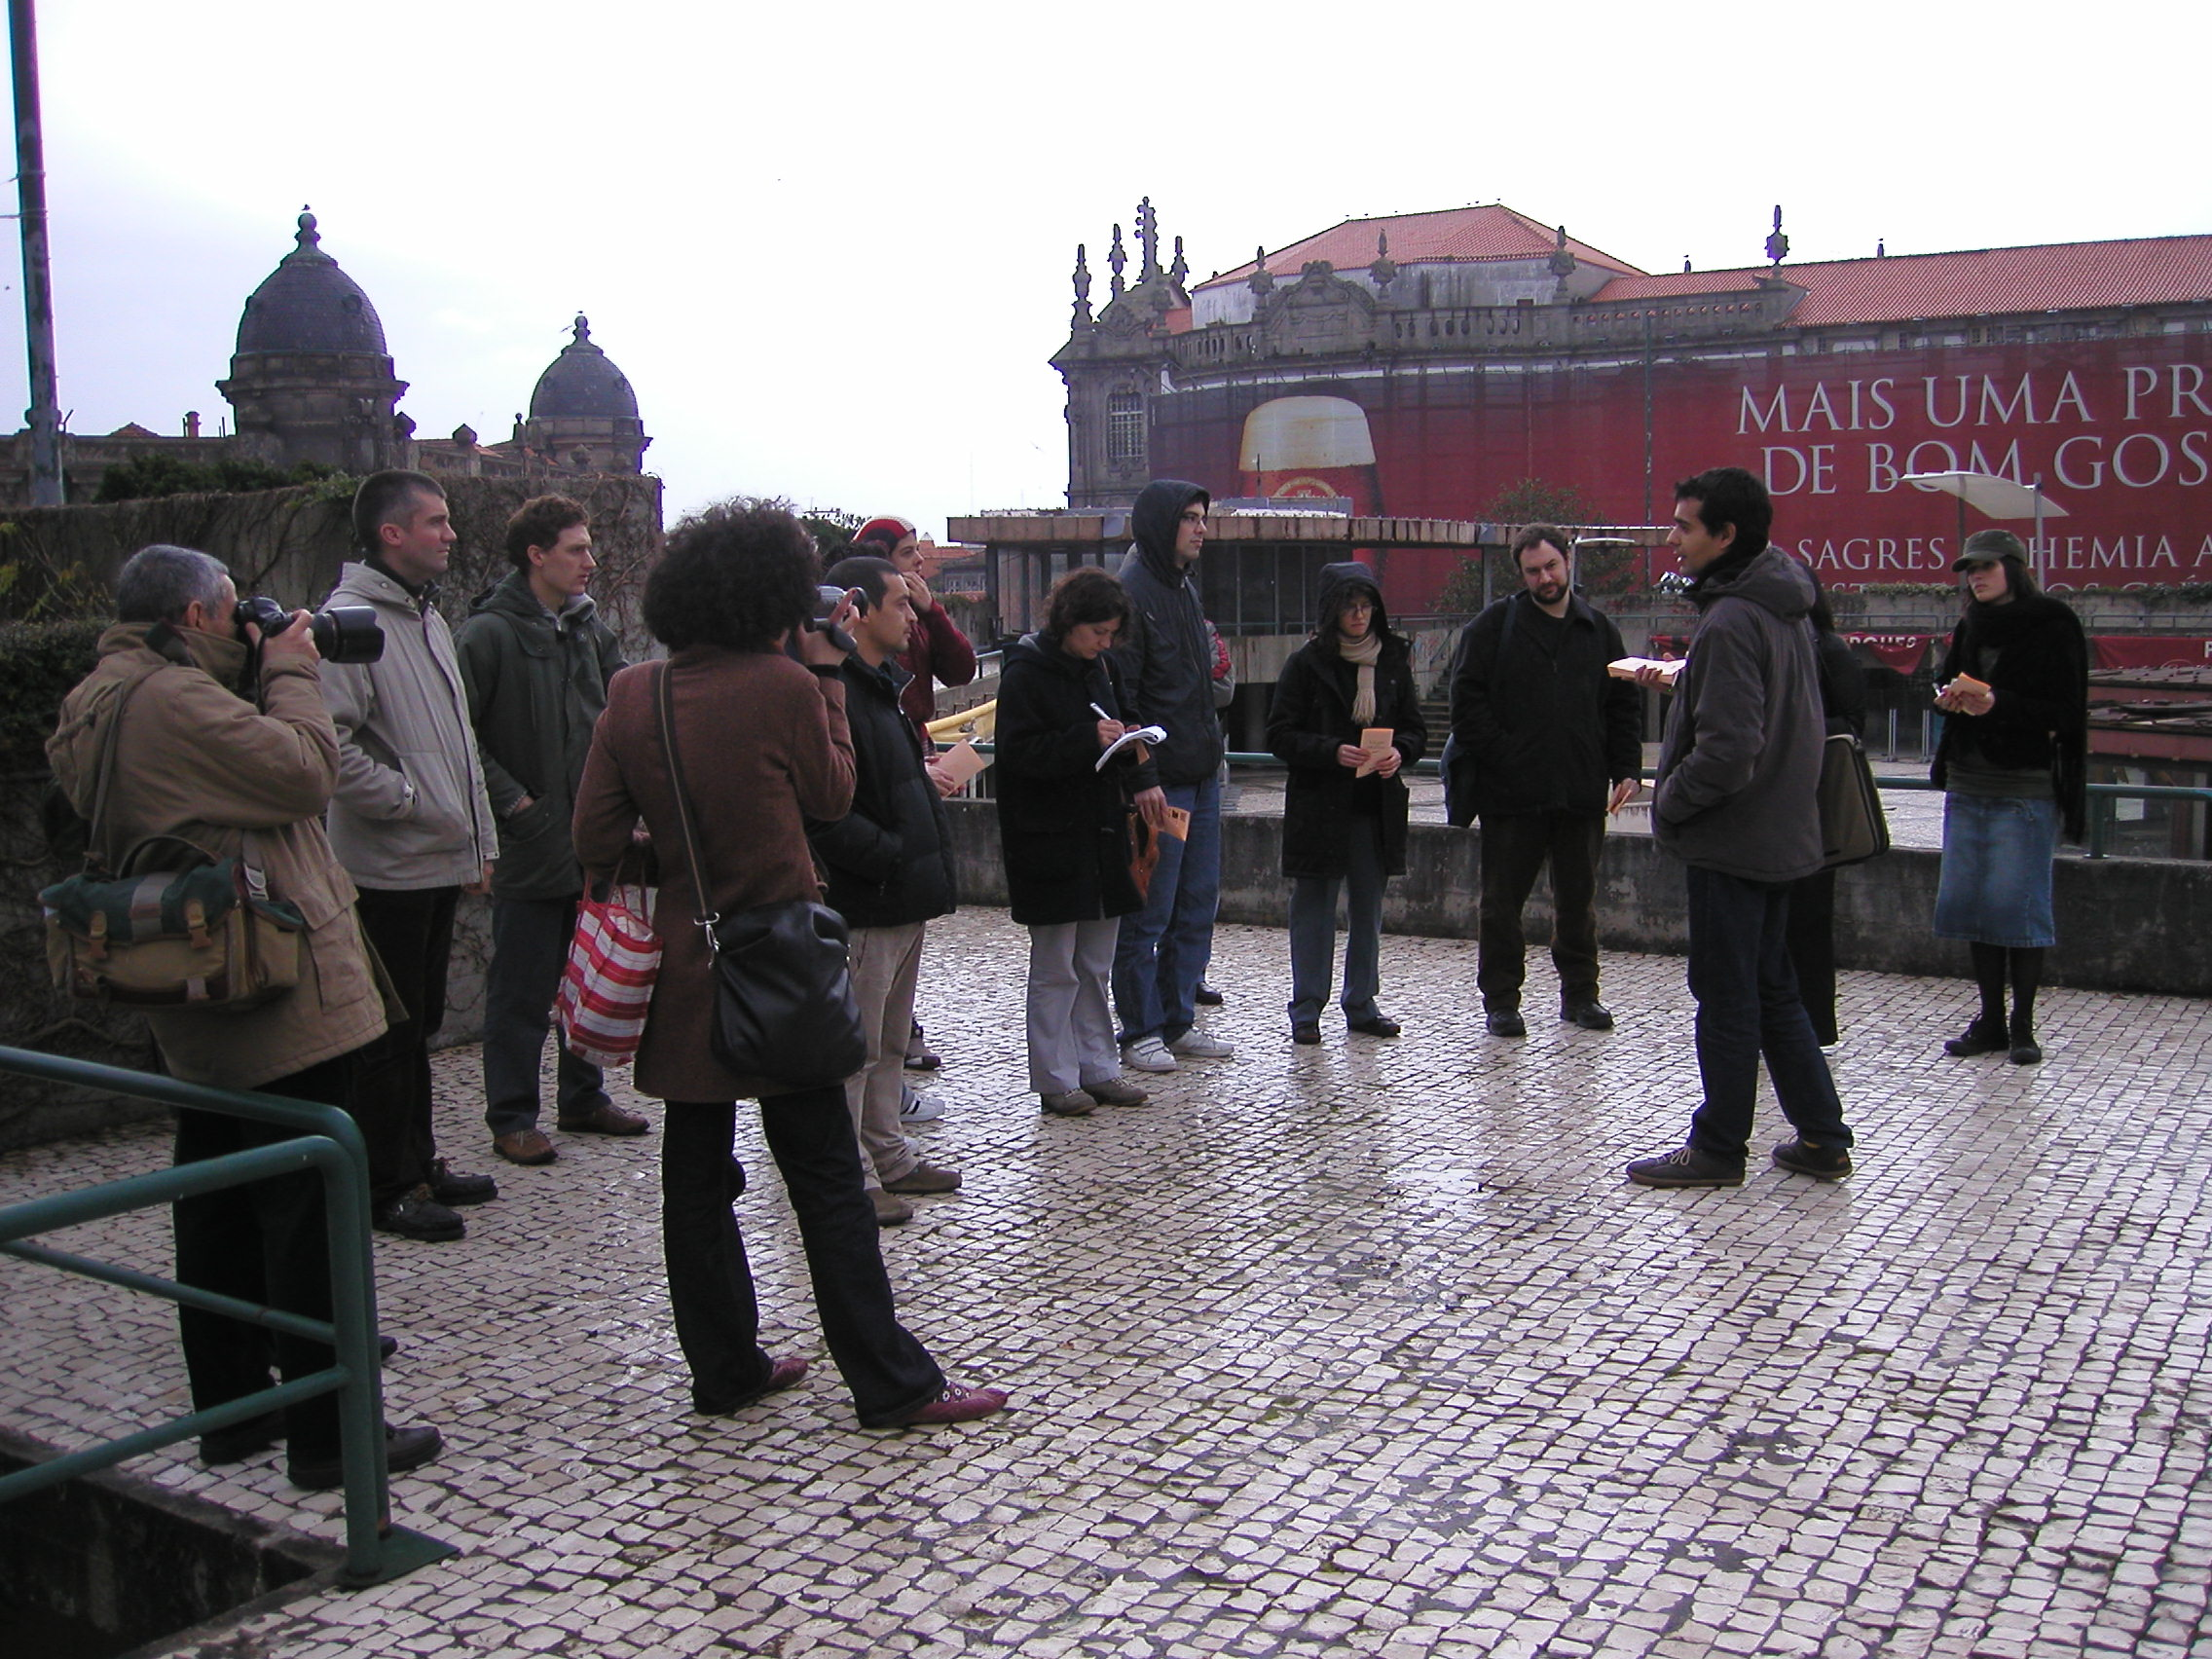 guided tour with Ricardo gomes - second day